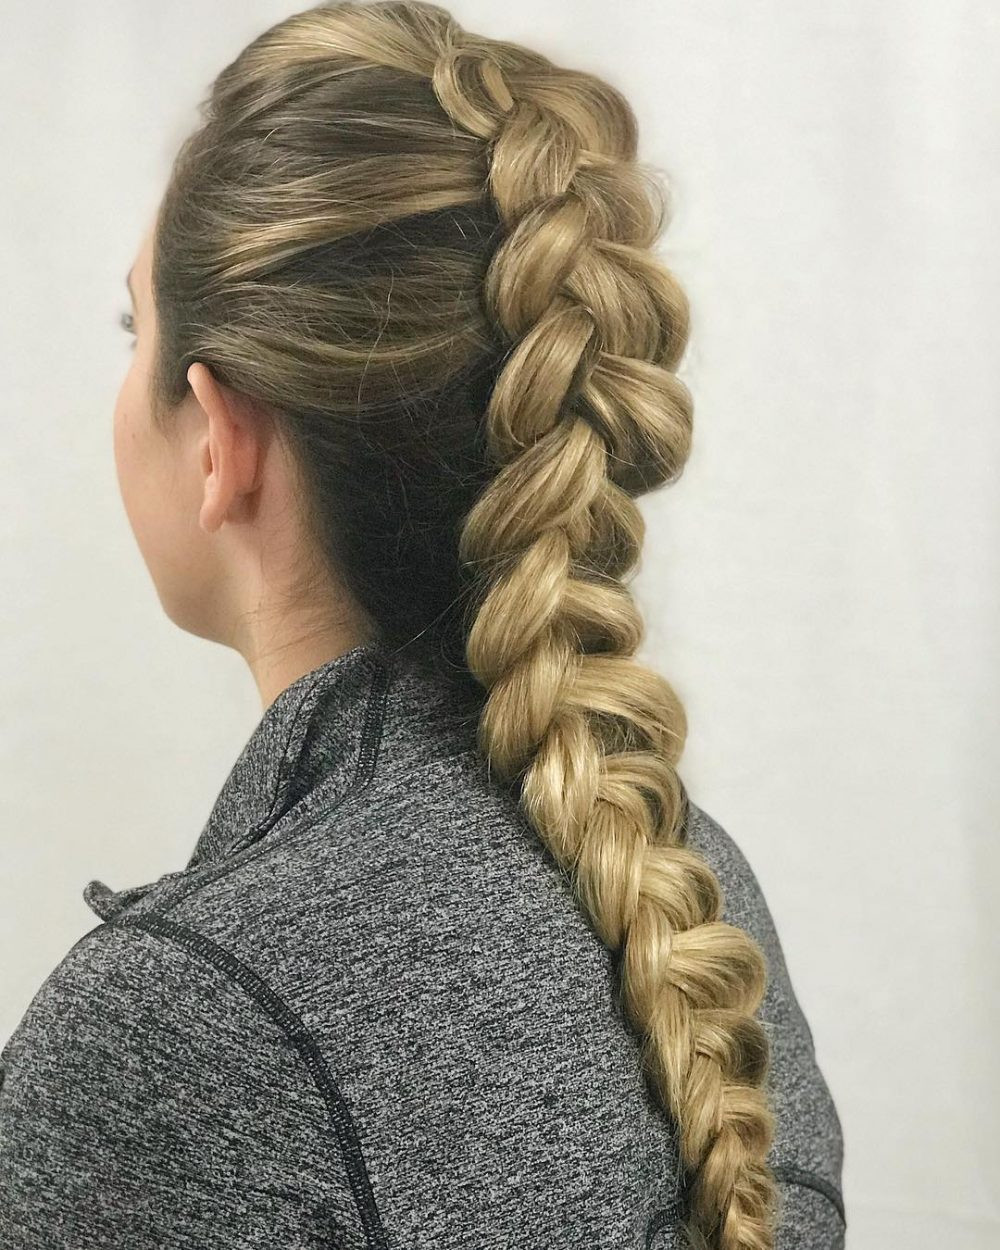 Best ideas about Cute Hairstyles . Save or Pin 38 Ridiculously Cute Hairstyles for Long Hair Popular in Now.